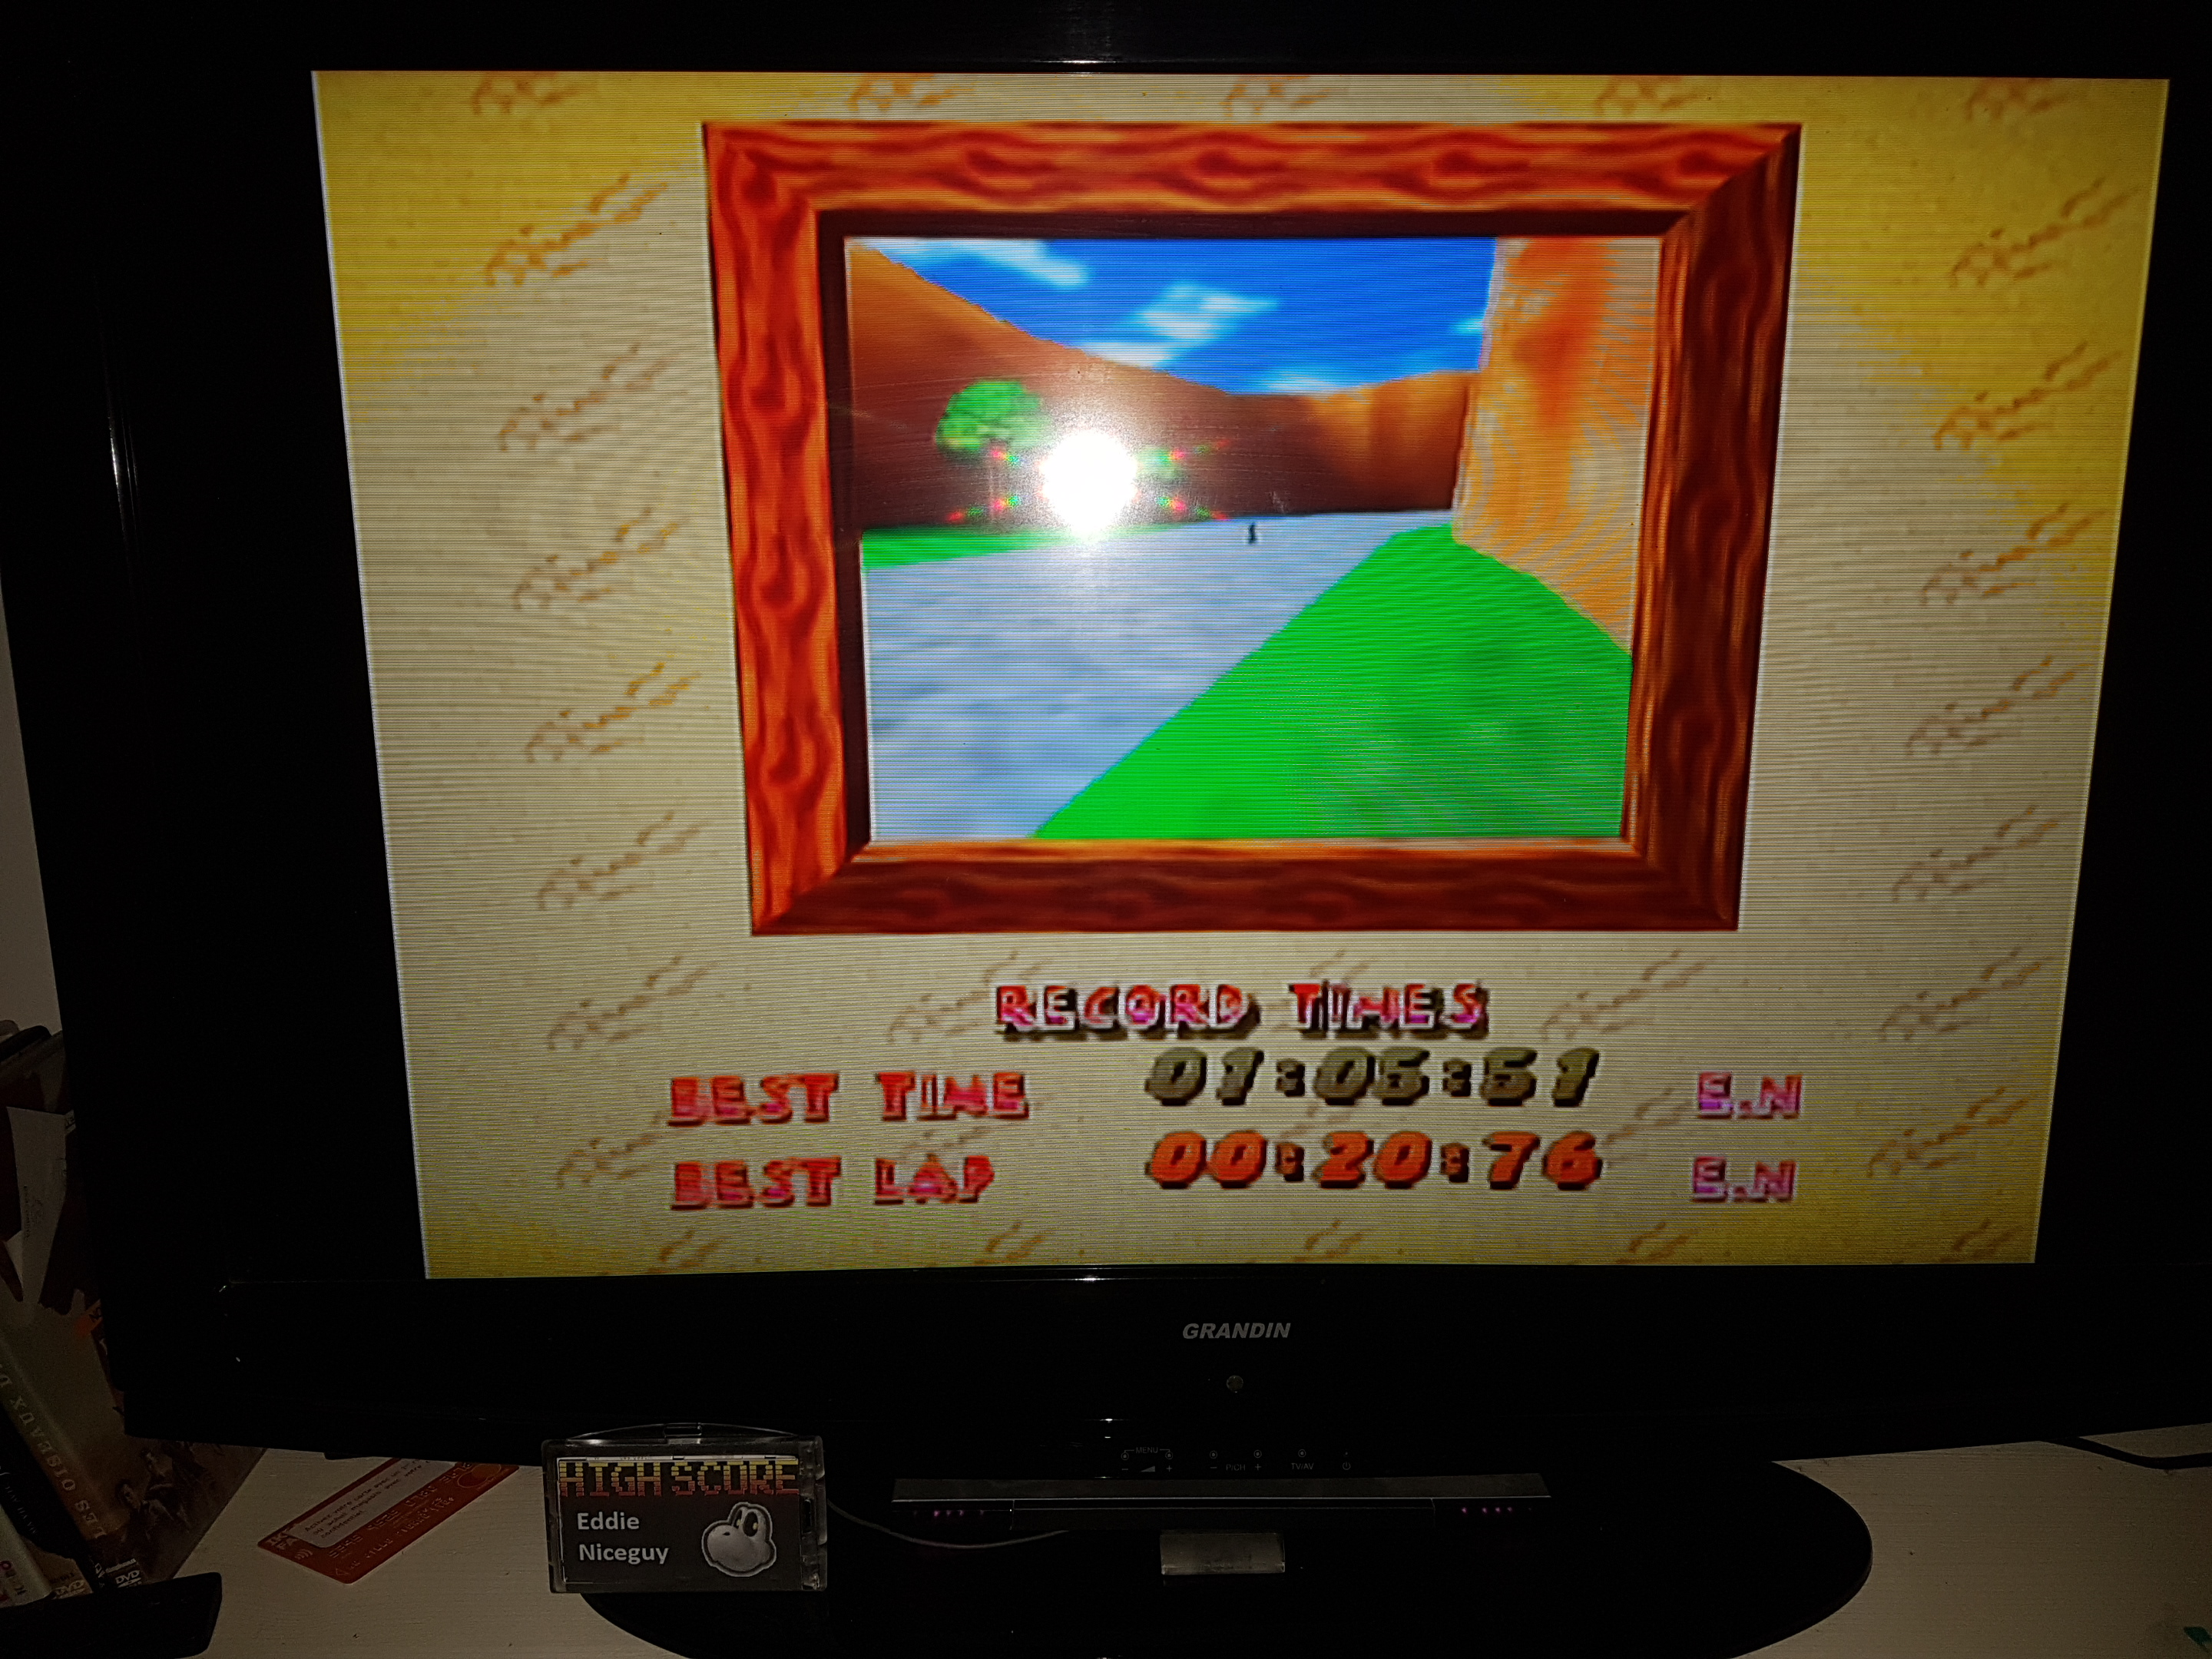 EddieNiceguy: Diddy Kong Racing: Tracks [Ancient Lake] (N64 Emulated) 0:01:05.51 points on 2019-12-07 17:38:57